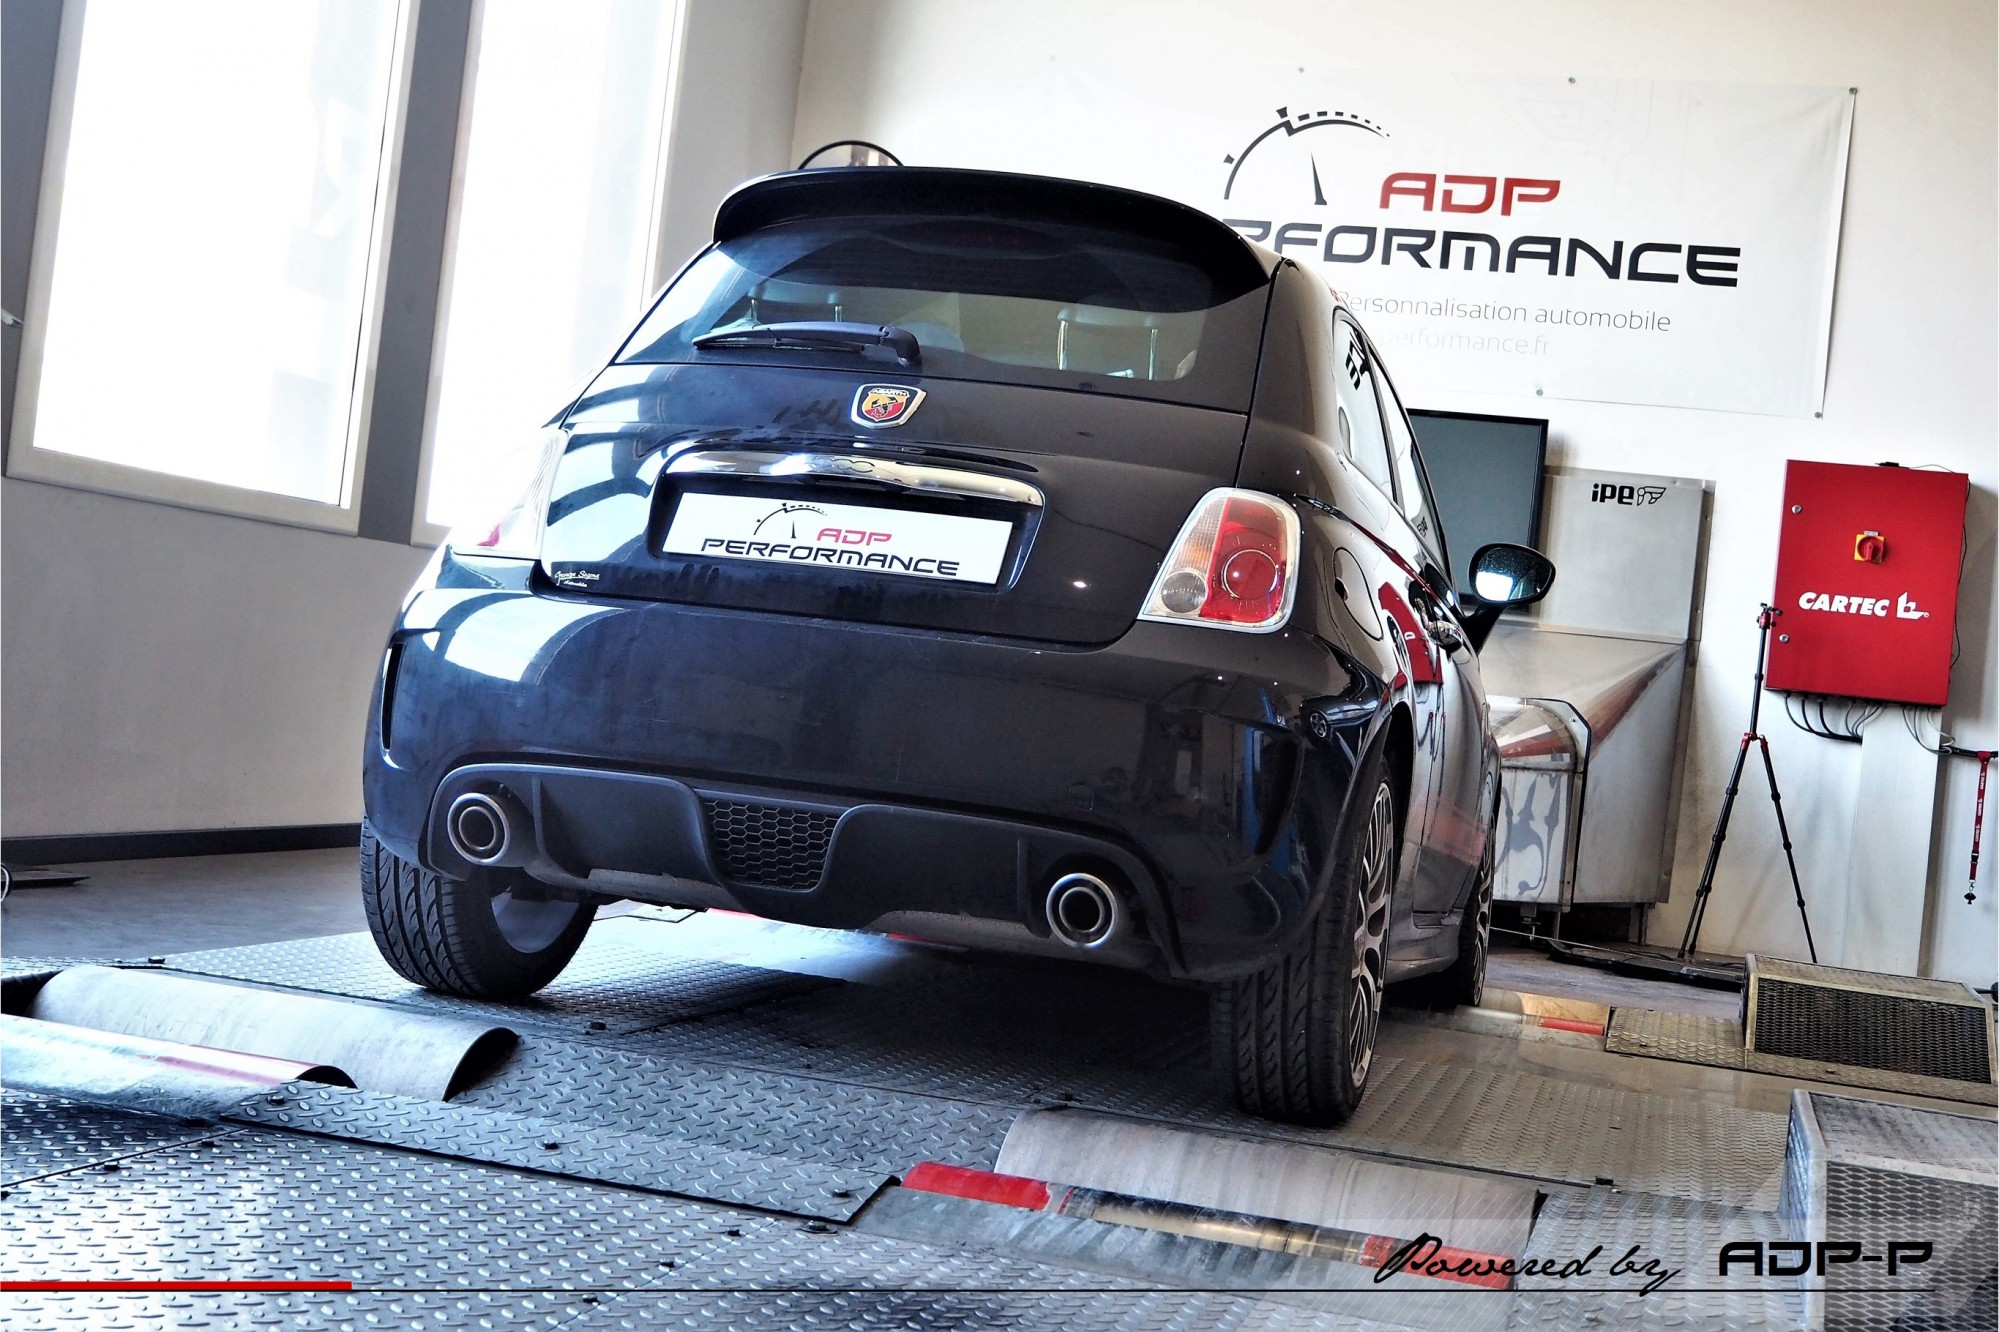 Reprogrammation moteur Vitrolles - Fiat 500 Abarth 1.4 Tjet 135cv - ADP Performance